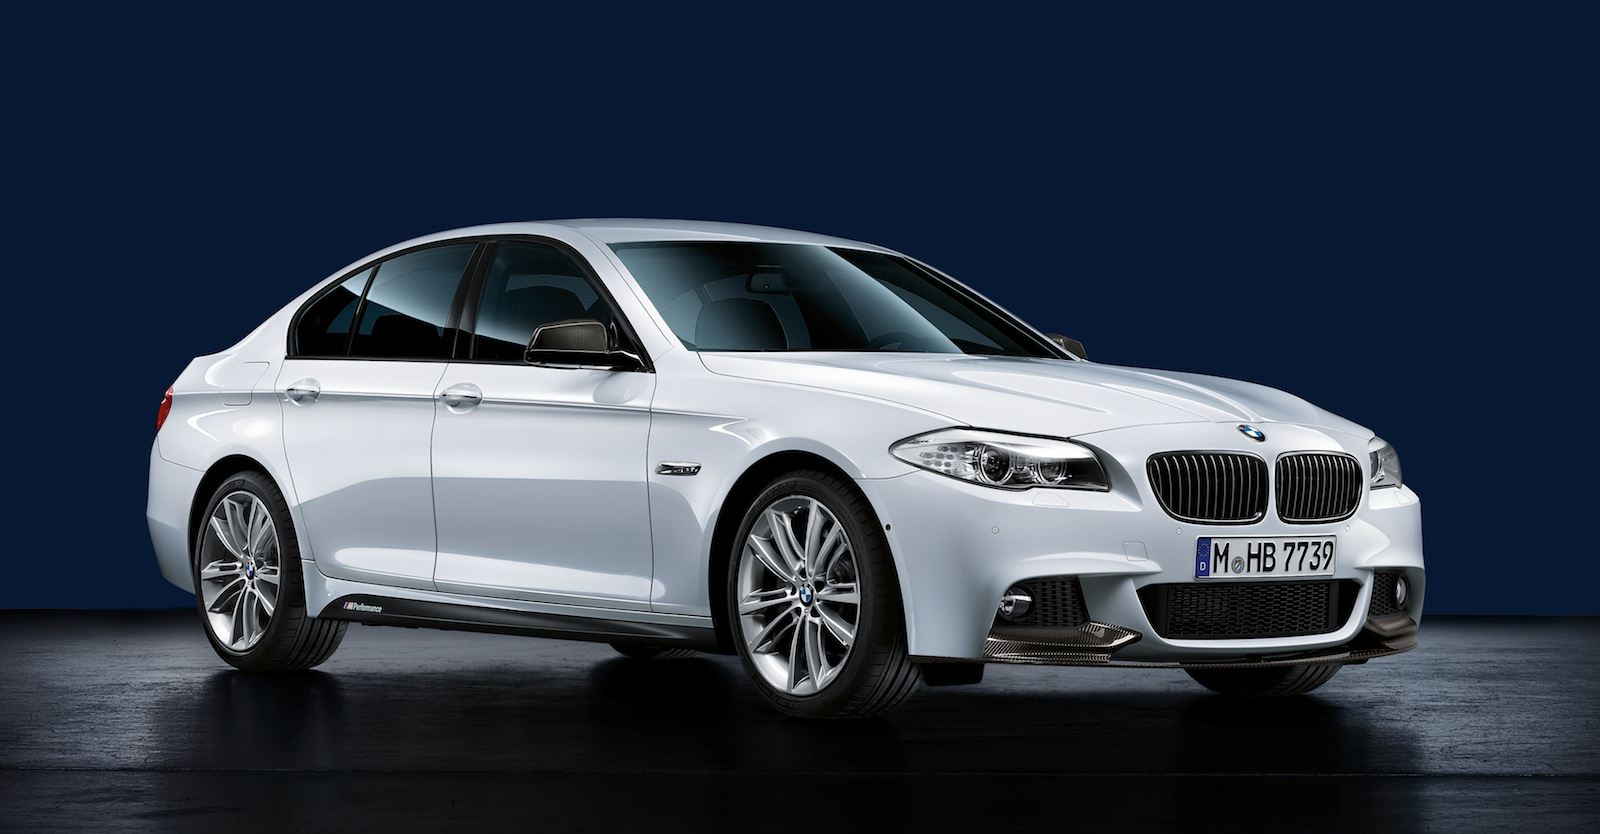 2013 bmw 5 series information and photos momentcar. Black Bedroom Furniture Sets. Home Design Ideas